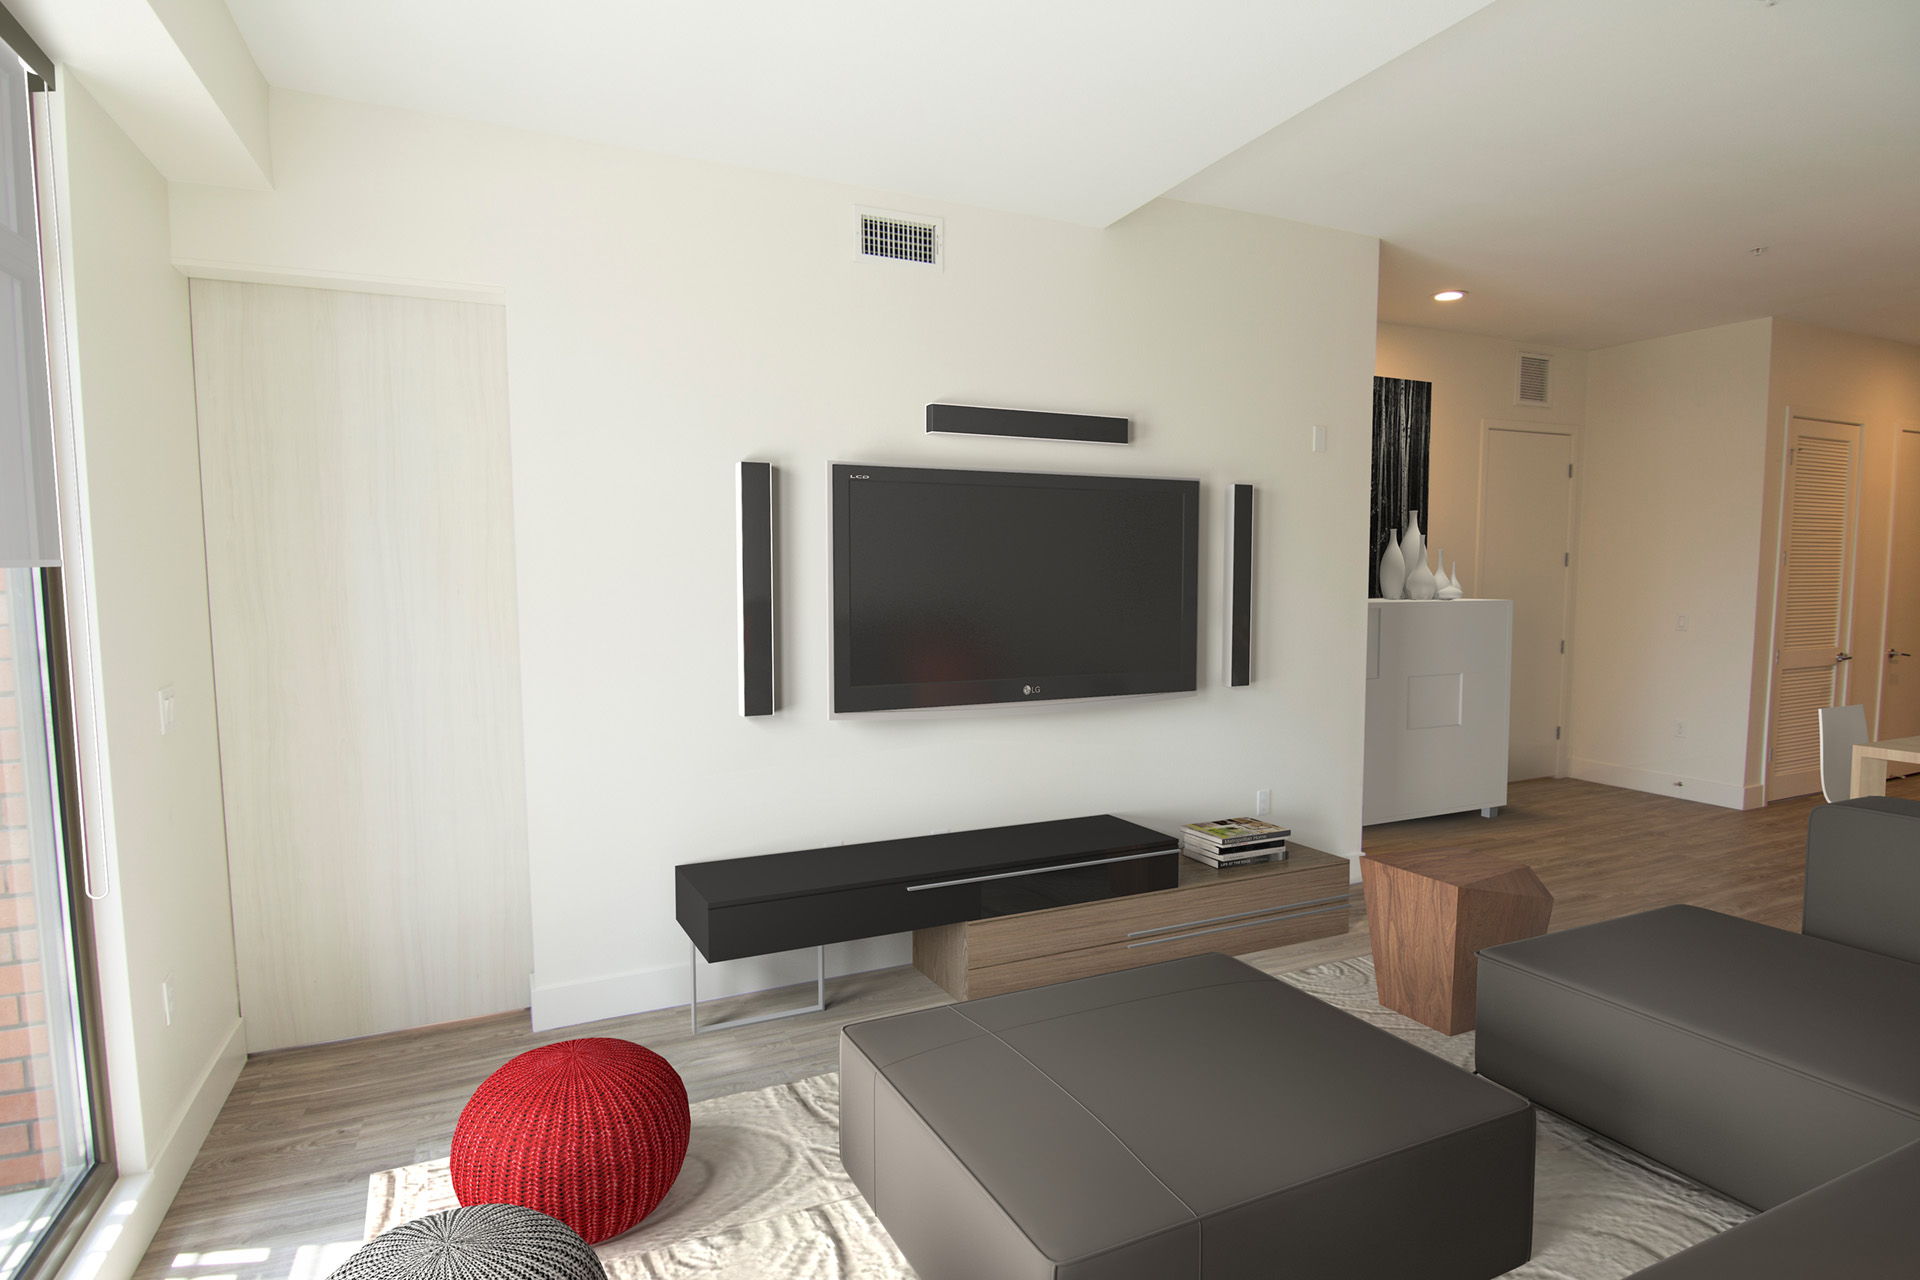 Luxury Apartments for Rent in Westwood, CA Apartments for Rent in Westwood, Los Angeles CA - Gayley & Lindbrook Living Room